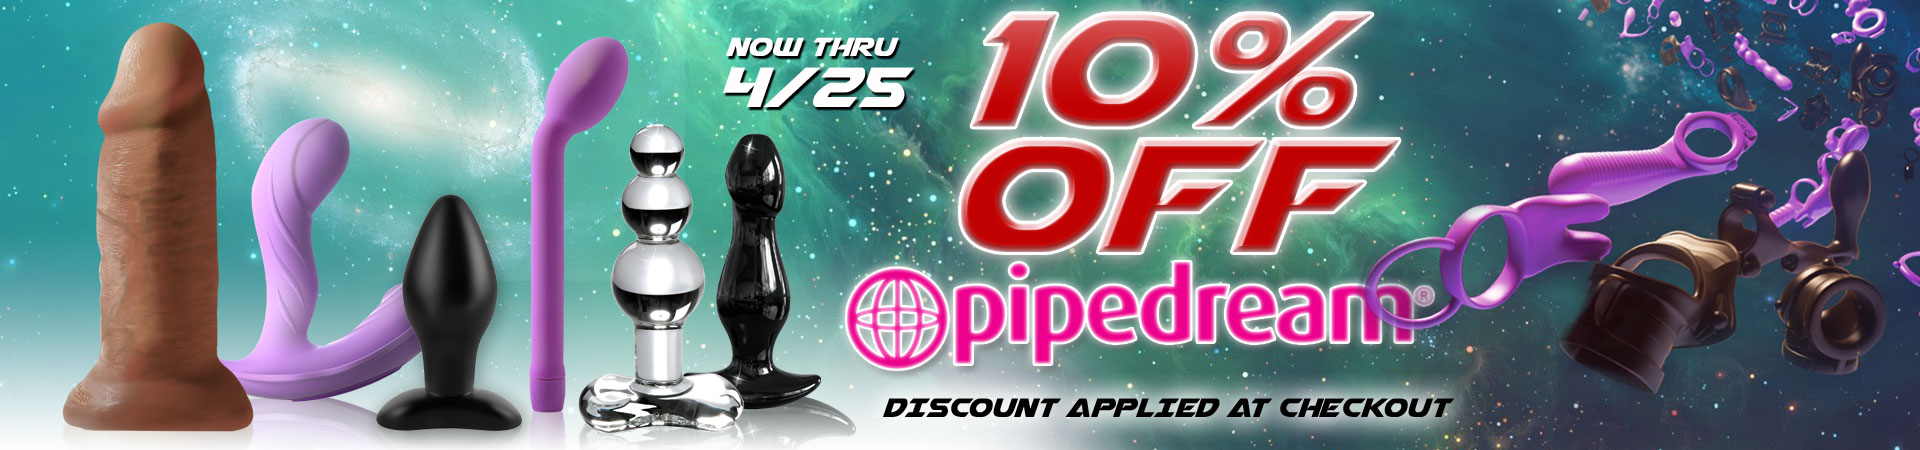 Right NOW at SheVibe! Save 10% on over 390+ Pipedream Toys! Sale Ends 4/25. Discount Applied At Checkout.